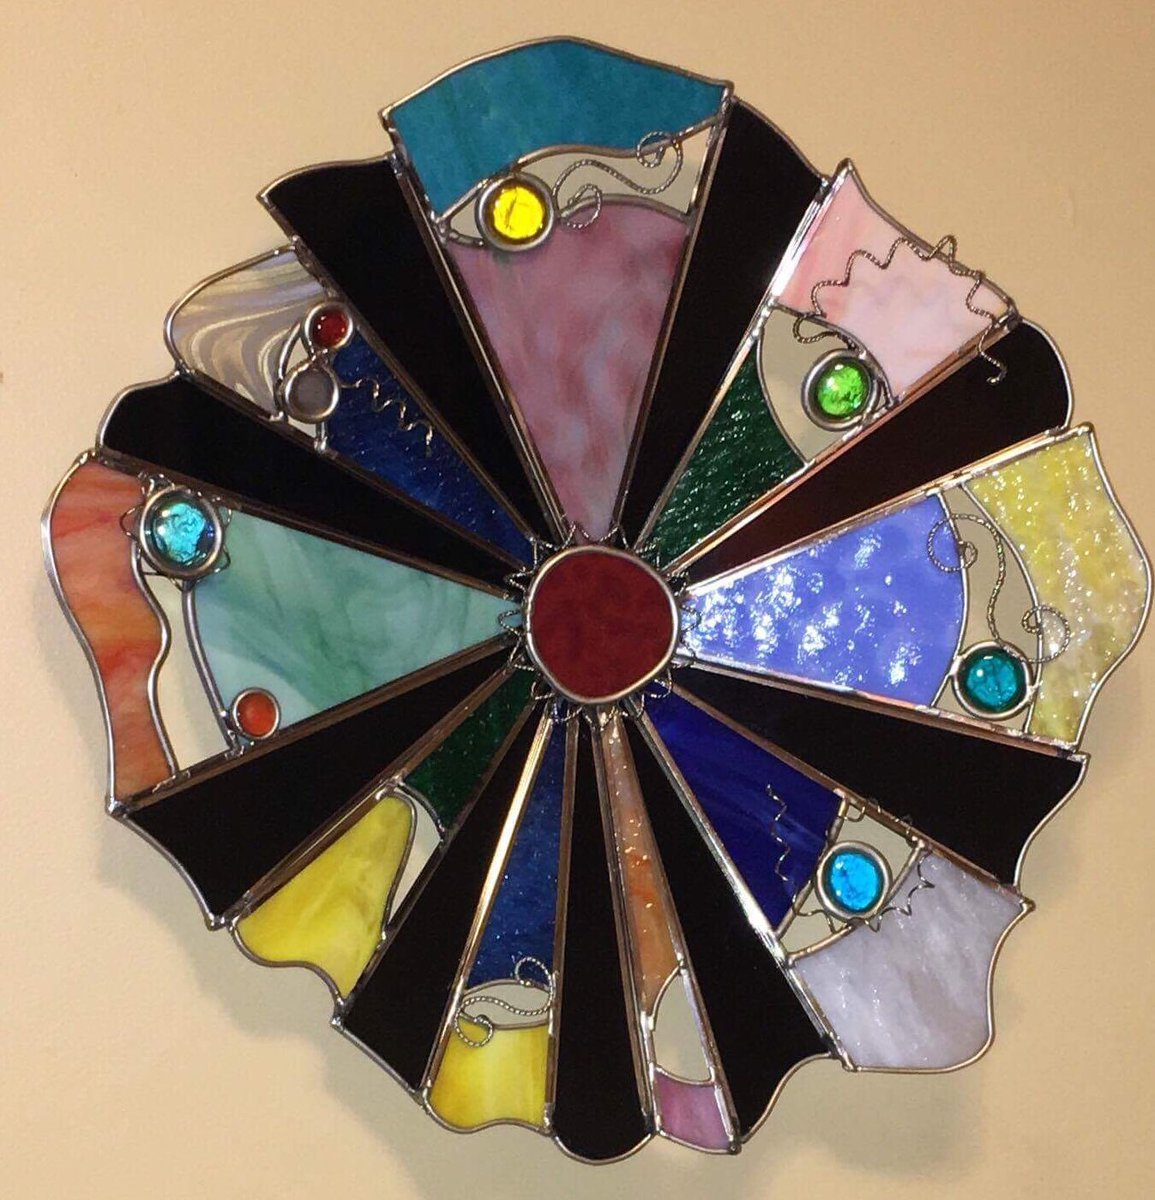 We have #Wall #Jewelry by Jeff Gullett. Stop in to see 11-5 today and 11-4 #Sat in the #Paseo #glassart #color #paseoartsdistrict #paseoartworks<br>http://pic.twitter.com/6g4Pt40Dlh